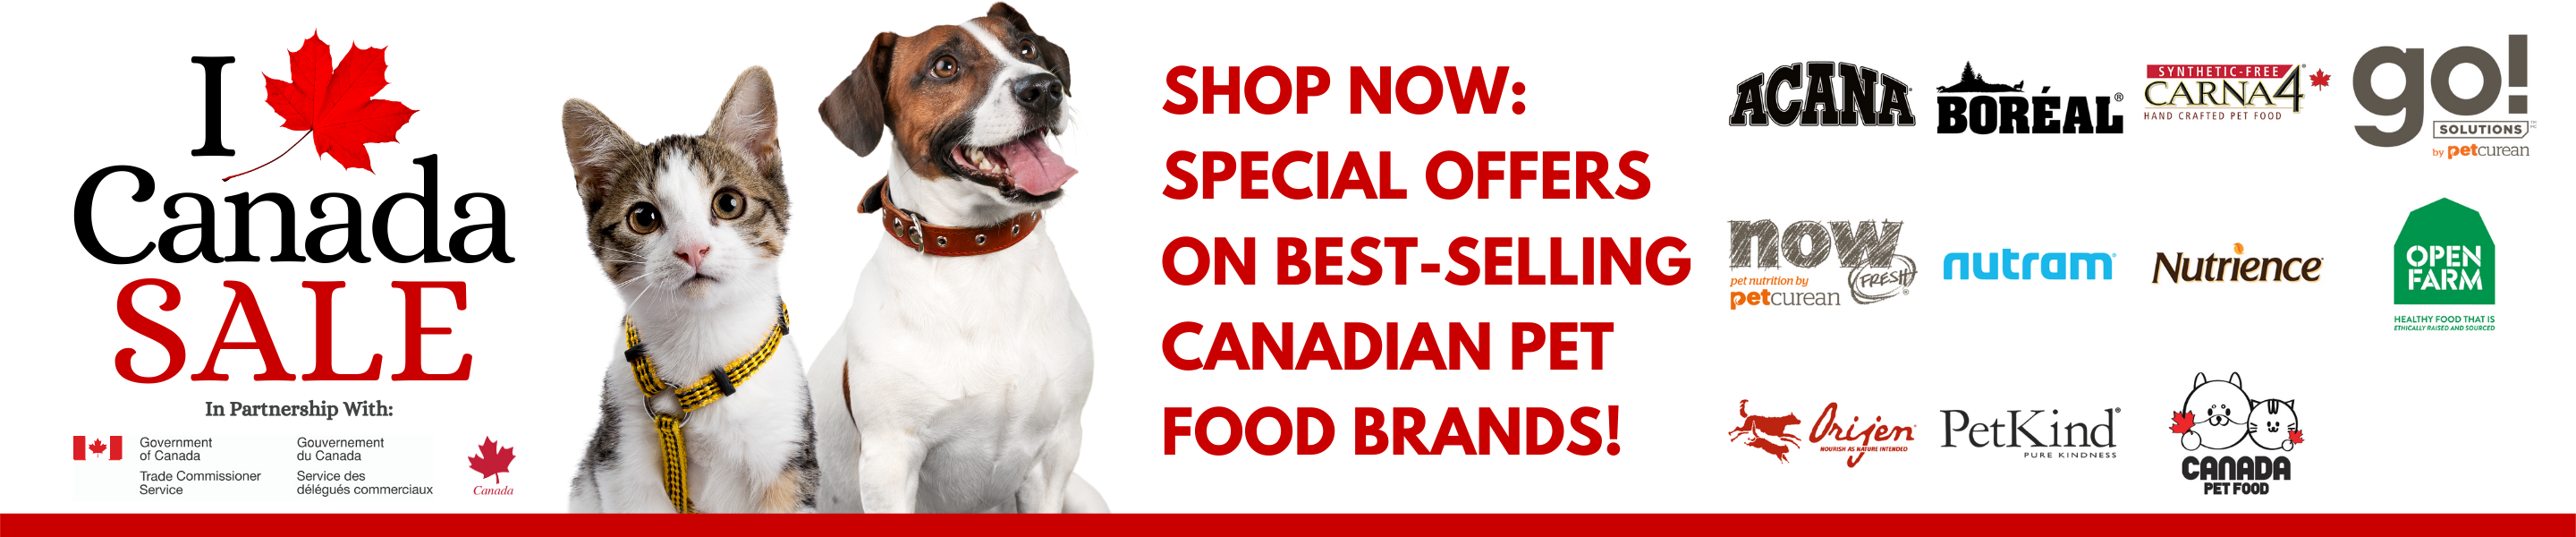 CANADA SPECIAL OFFERS